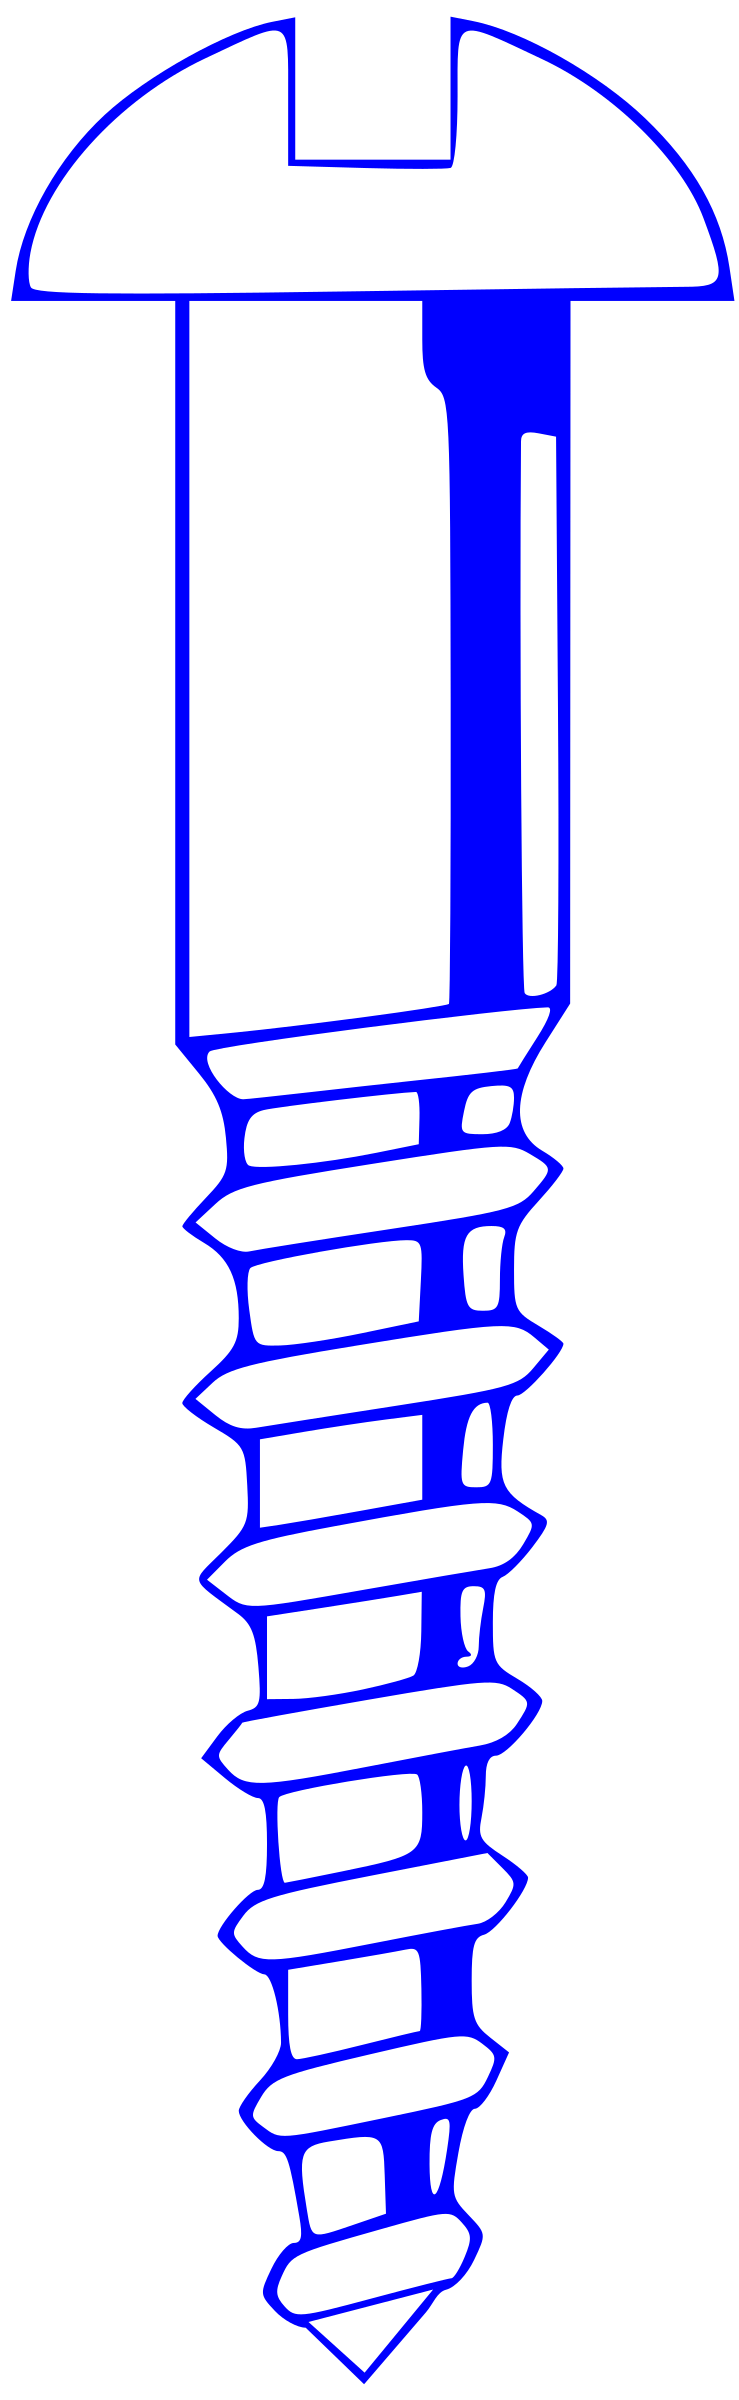 Wood Screw - Blue by Rfc1394